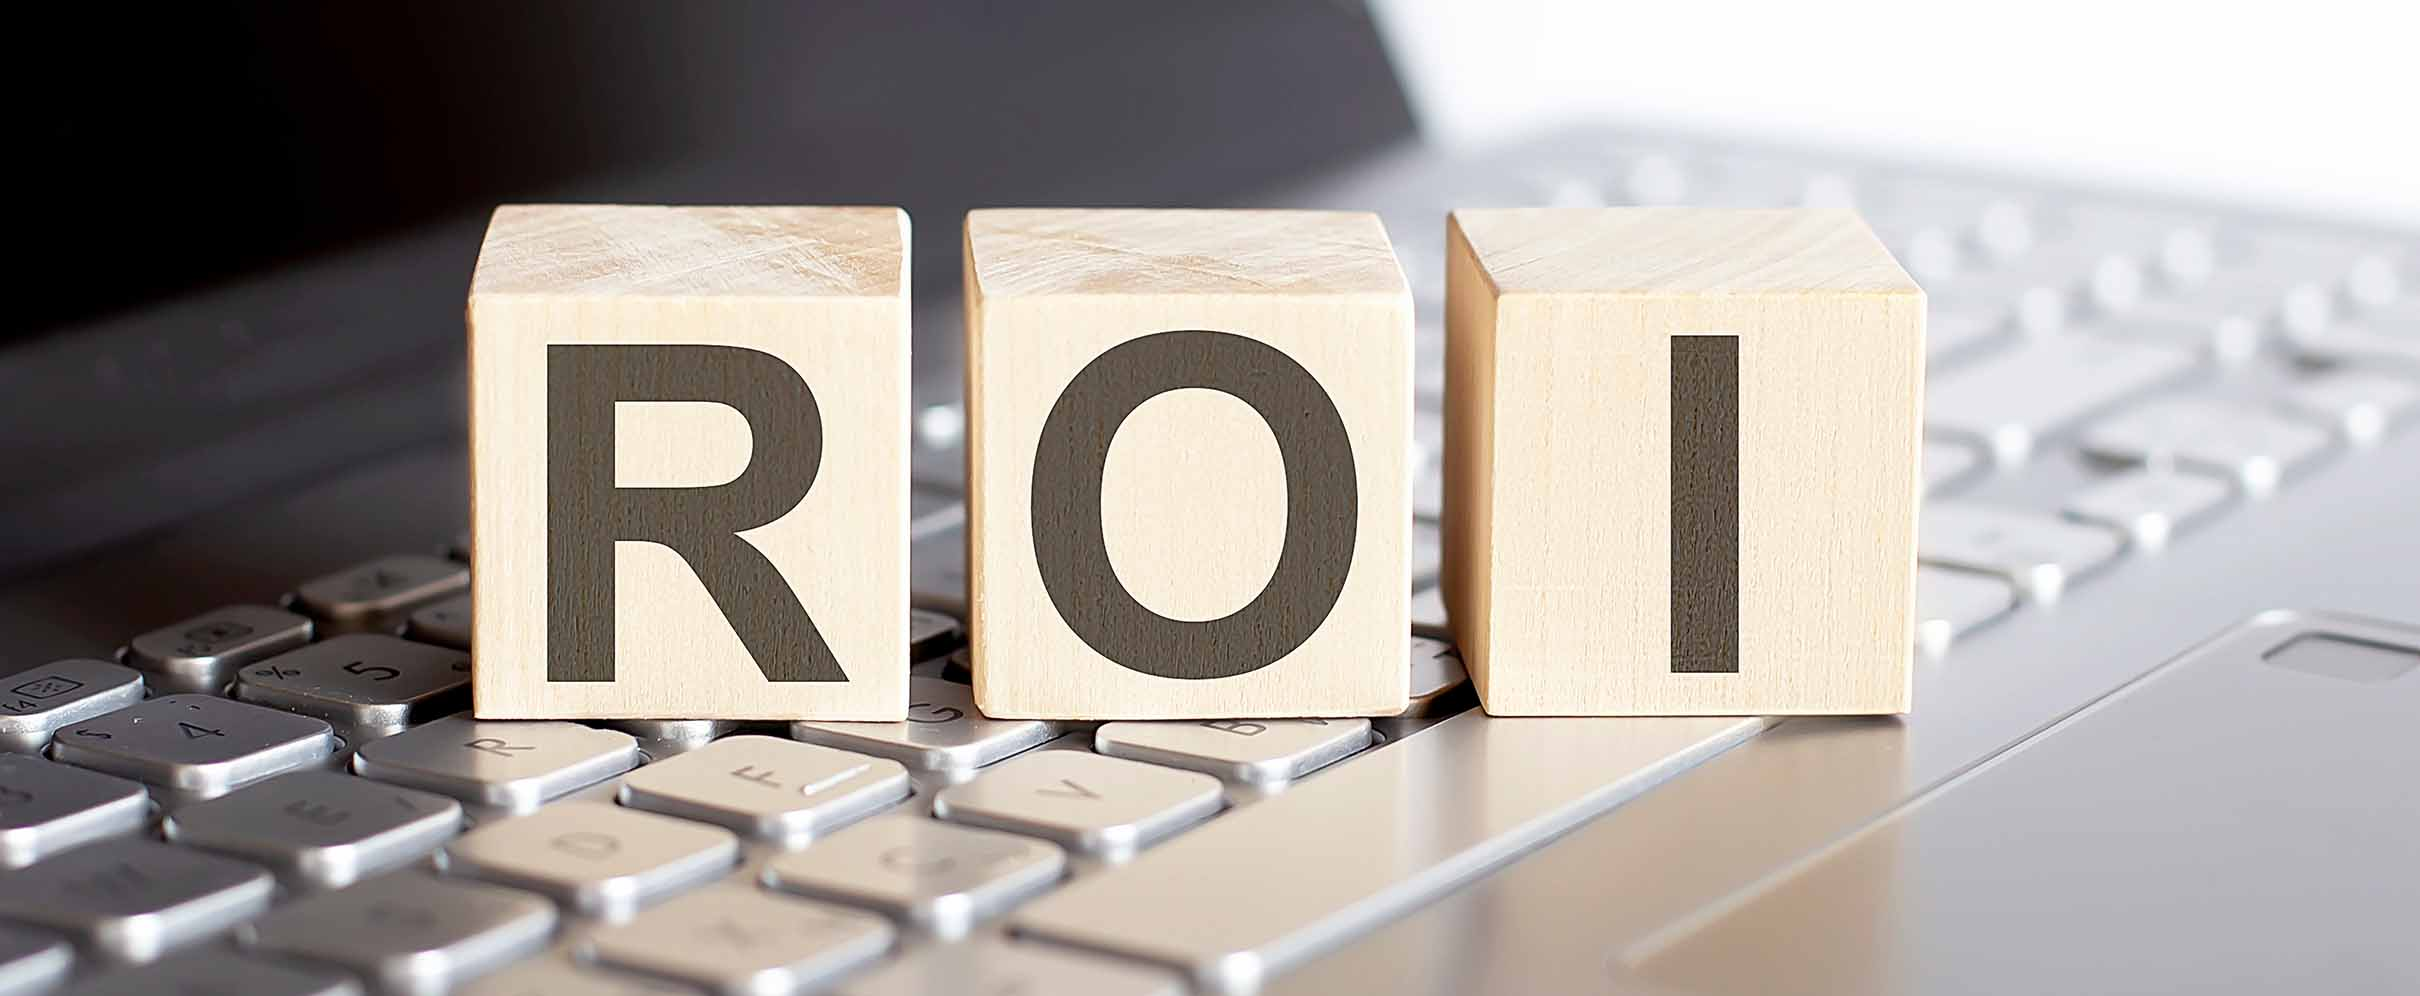 Three large wooden cubes spelling out 'ROI'.